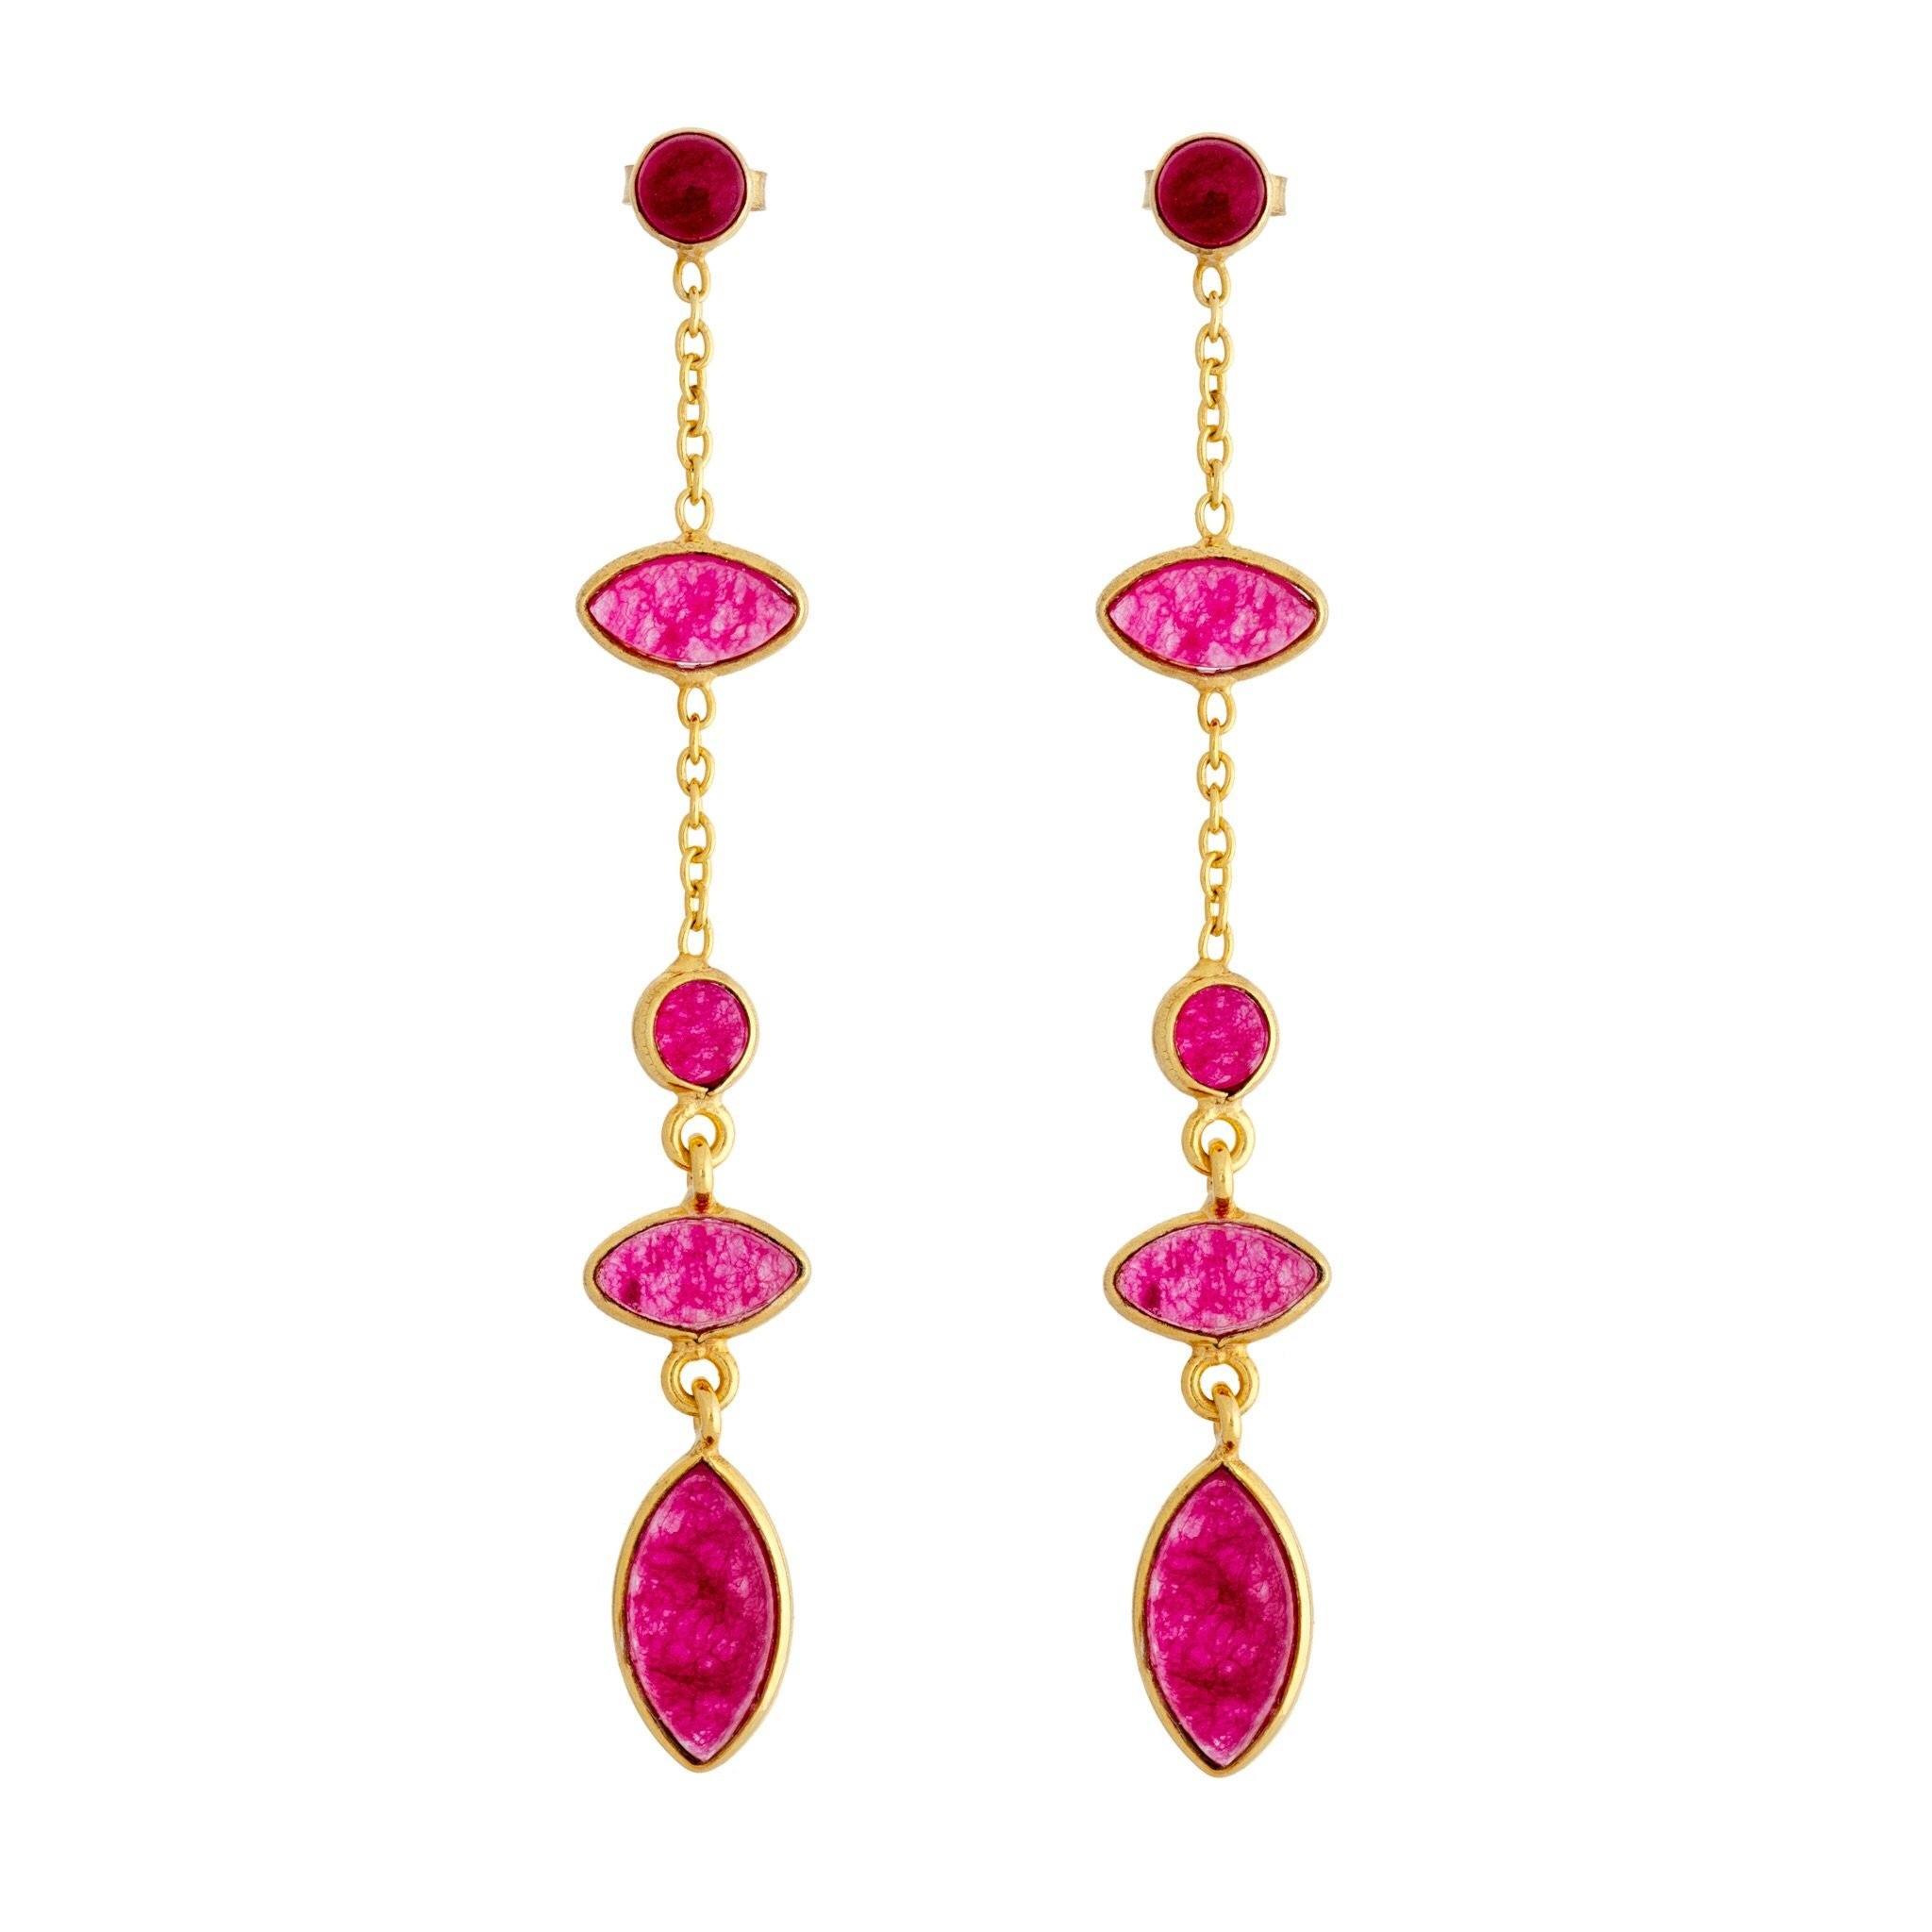 TA rubellite earrings